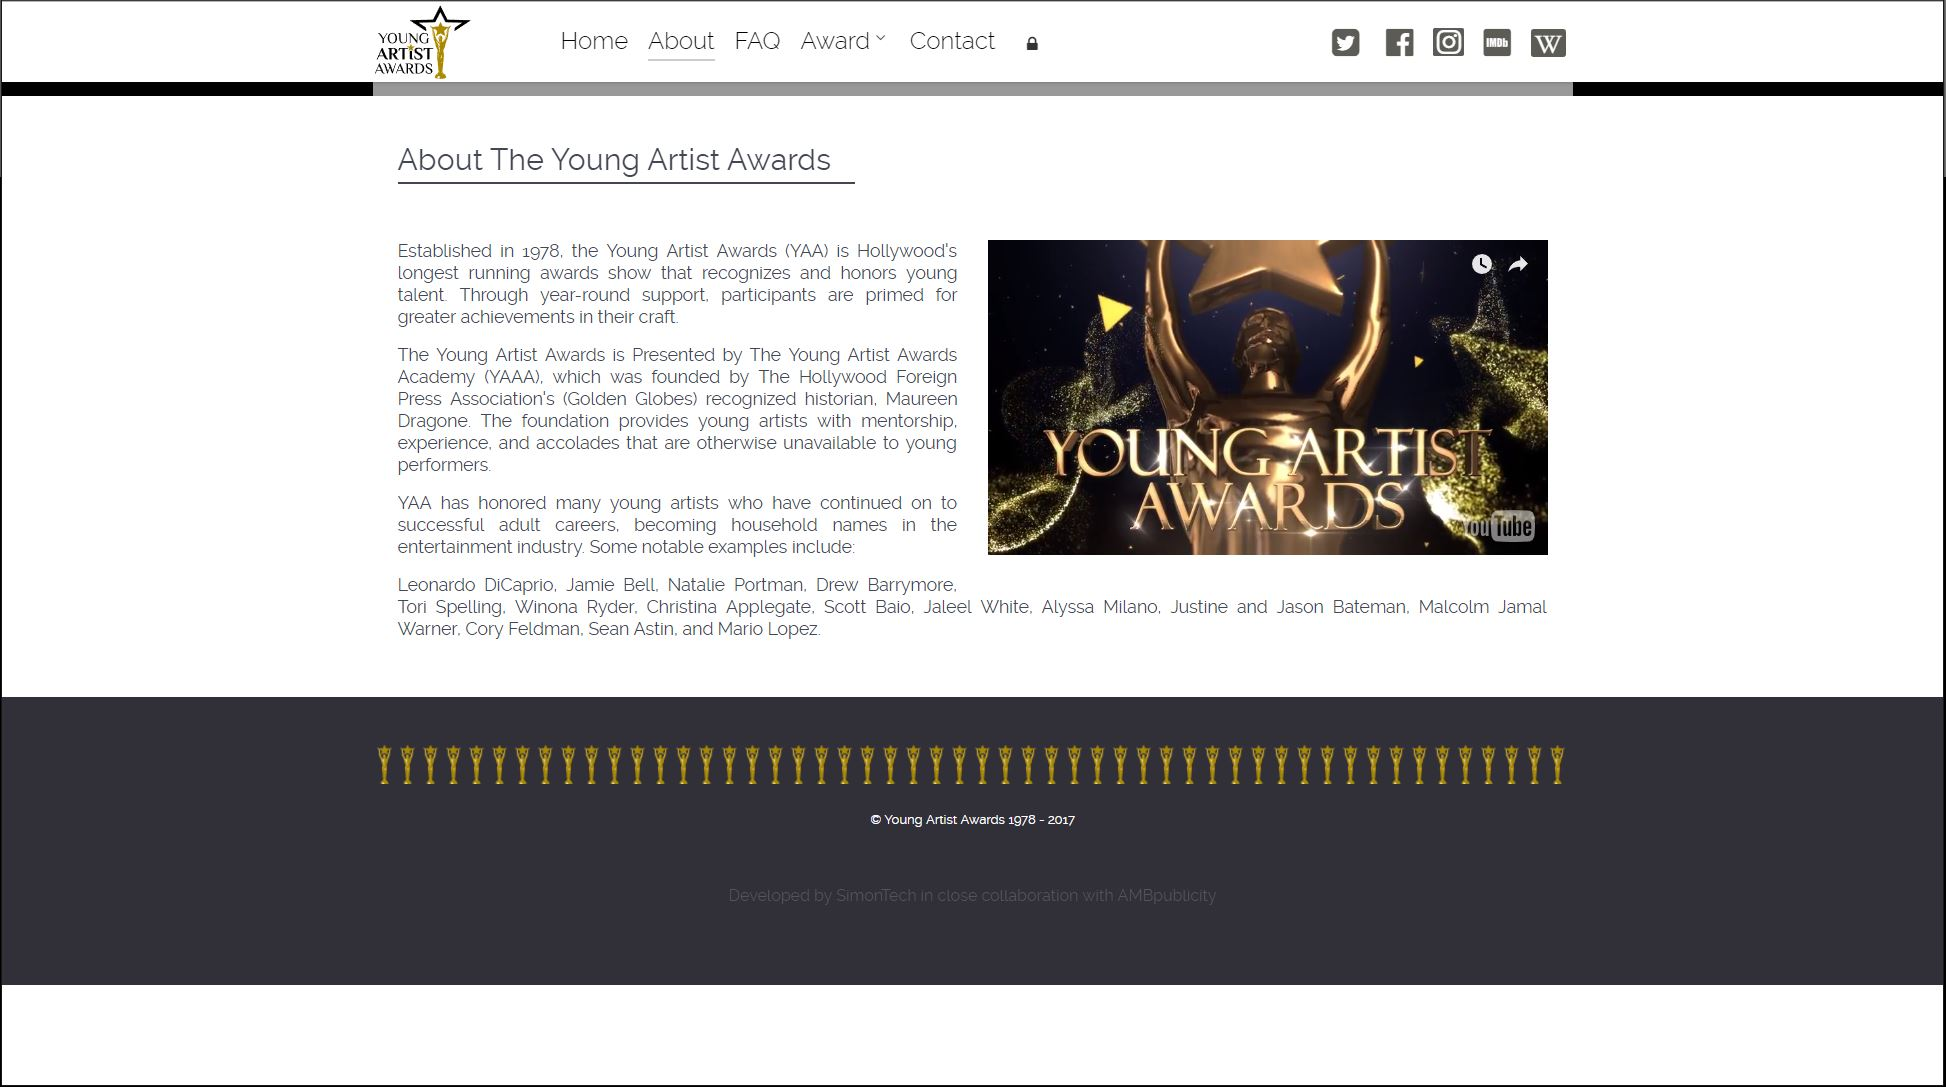 young-artist-awards2.JPG